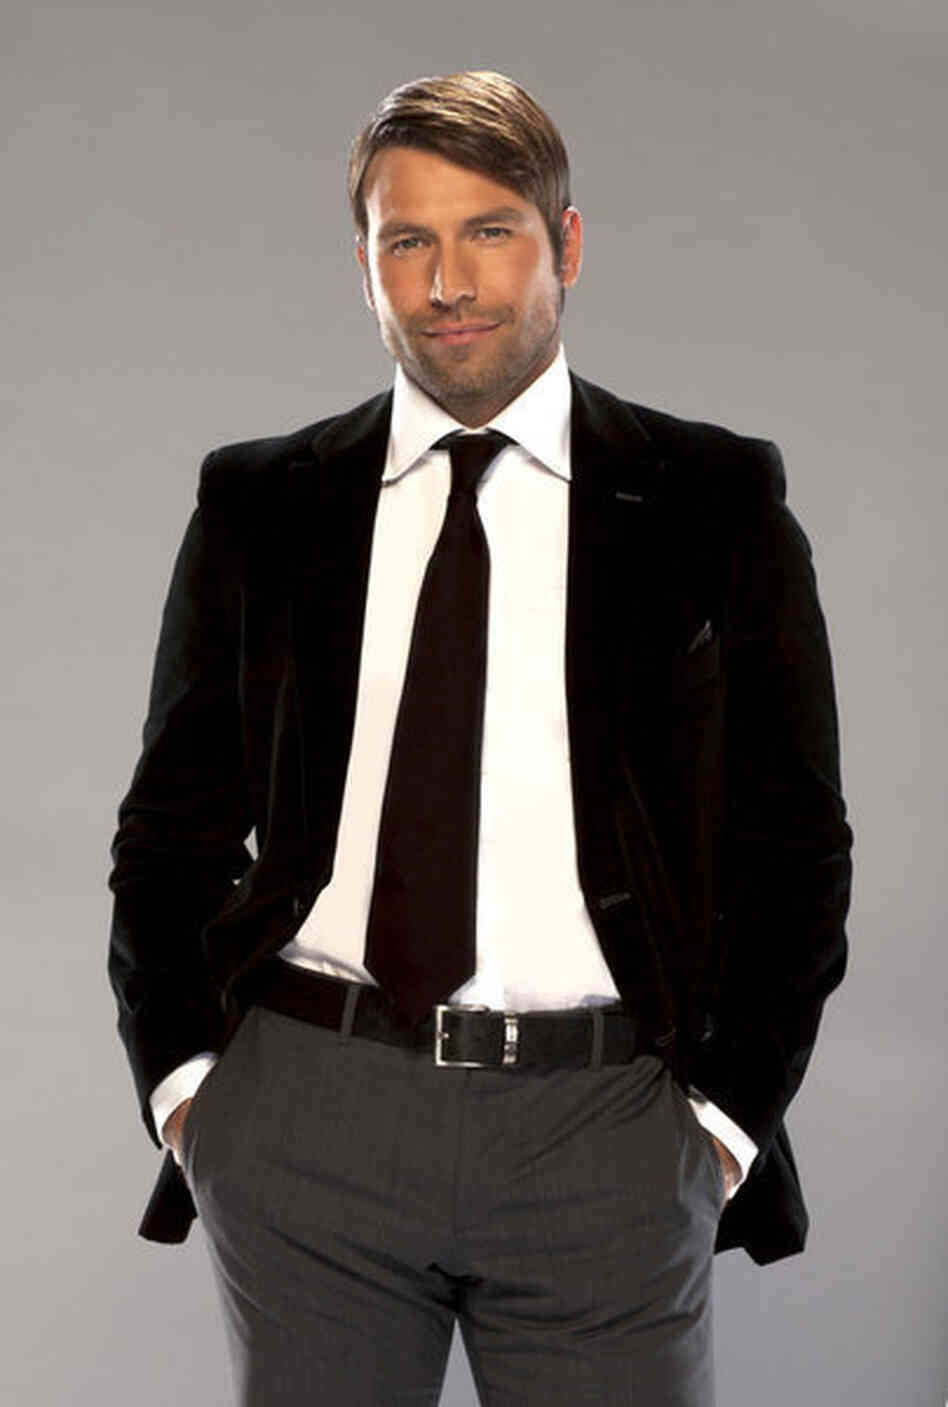 Rafael Amaya plays drug lord Aurelio Casillas on El Señor de los Cielos.